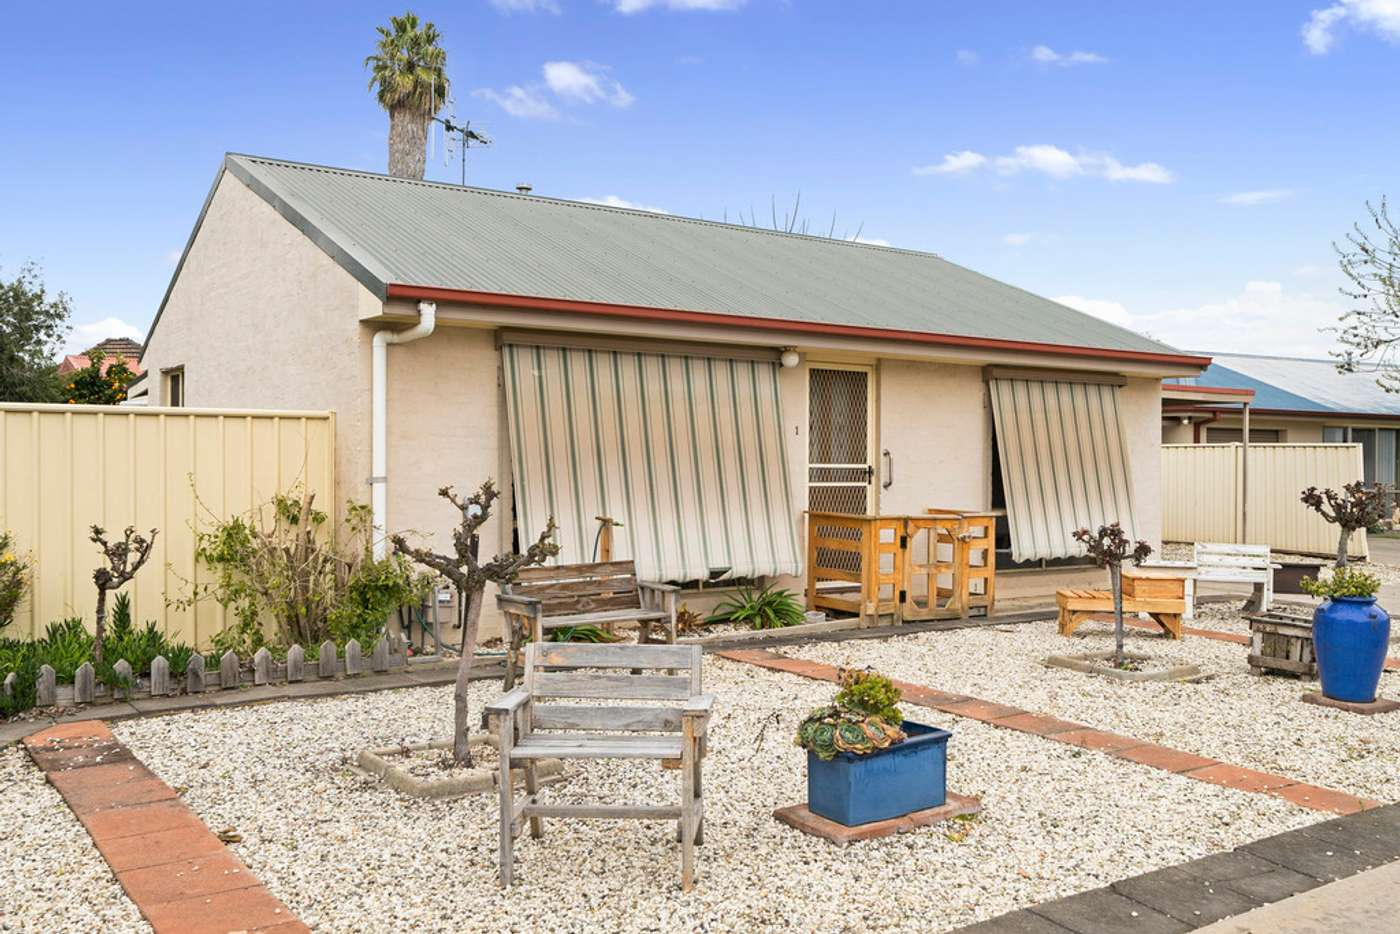 Main view of Homely house listing, 1/14 Goodwin Street, Benalla VIC 3672